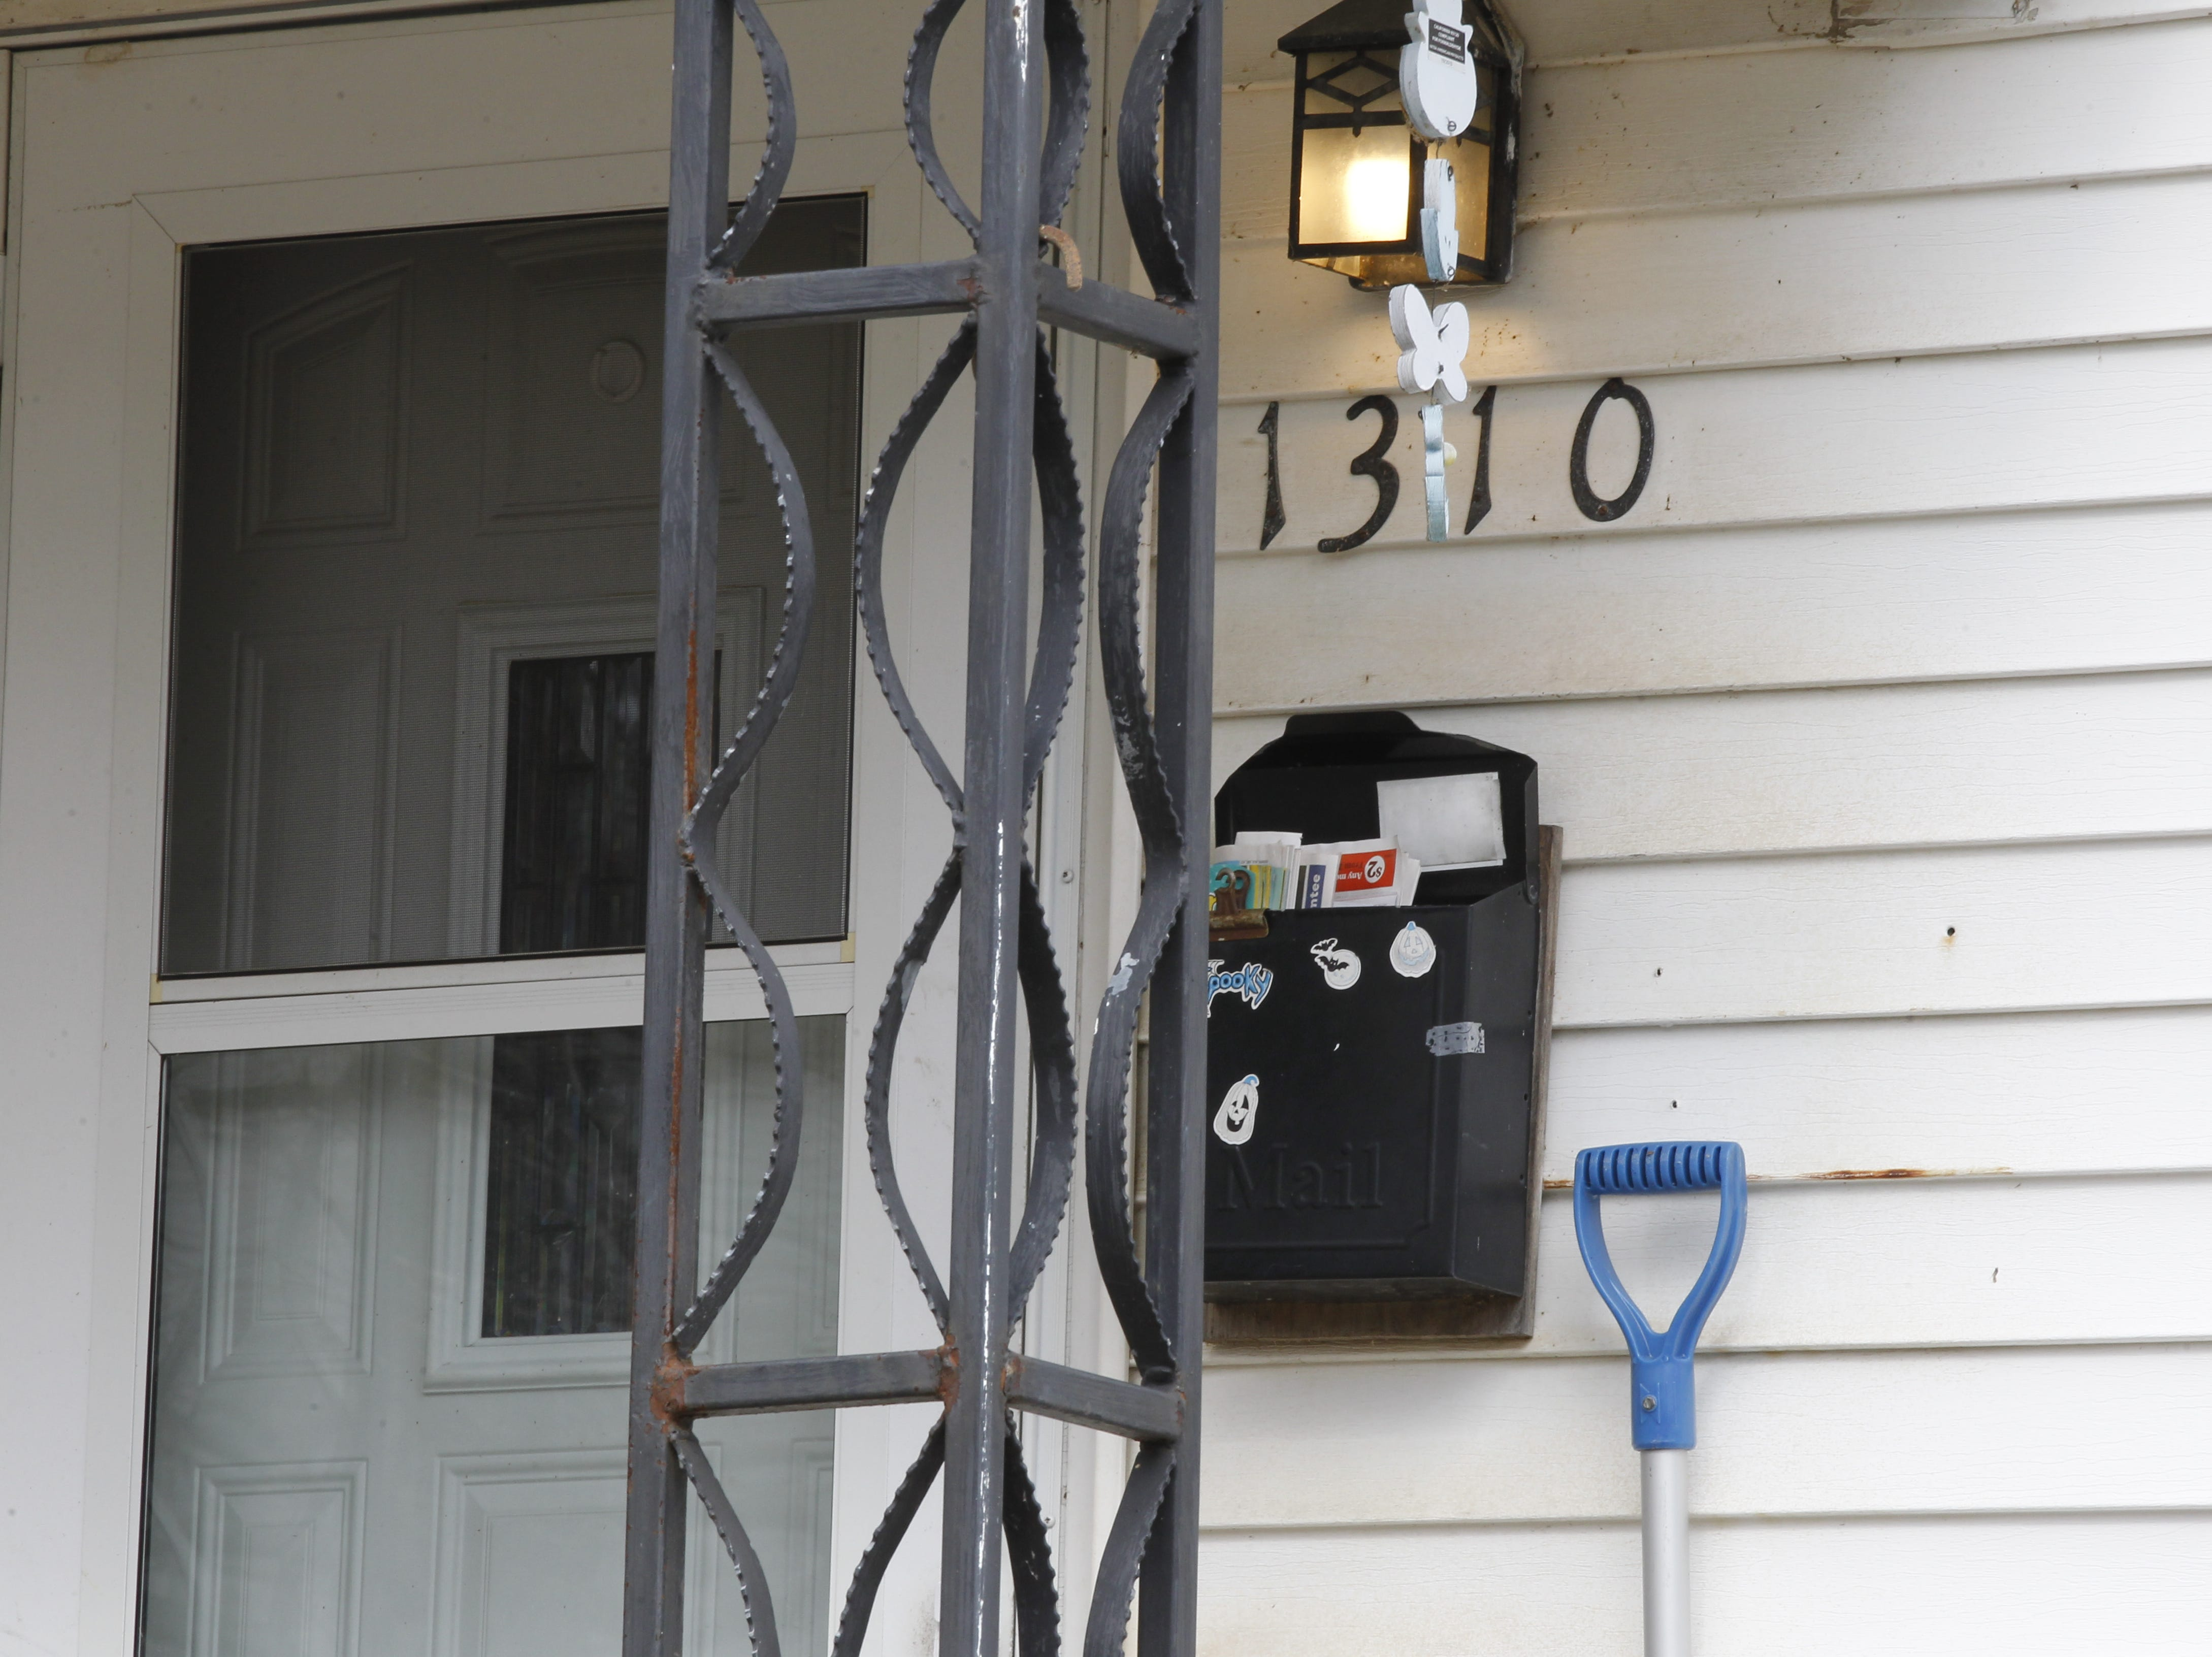 Lisa Heinsen's porch light remains on and her mail is piling up, suggesting that perhaps something's amiss. Family members asked police to check on her Thursday night, and officers found Heinsen dead inside the house on Hart Street.